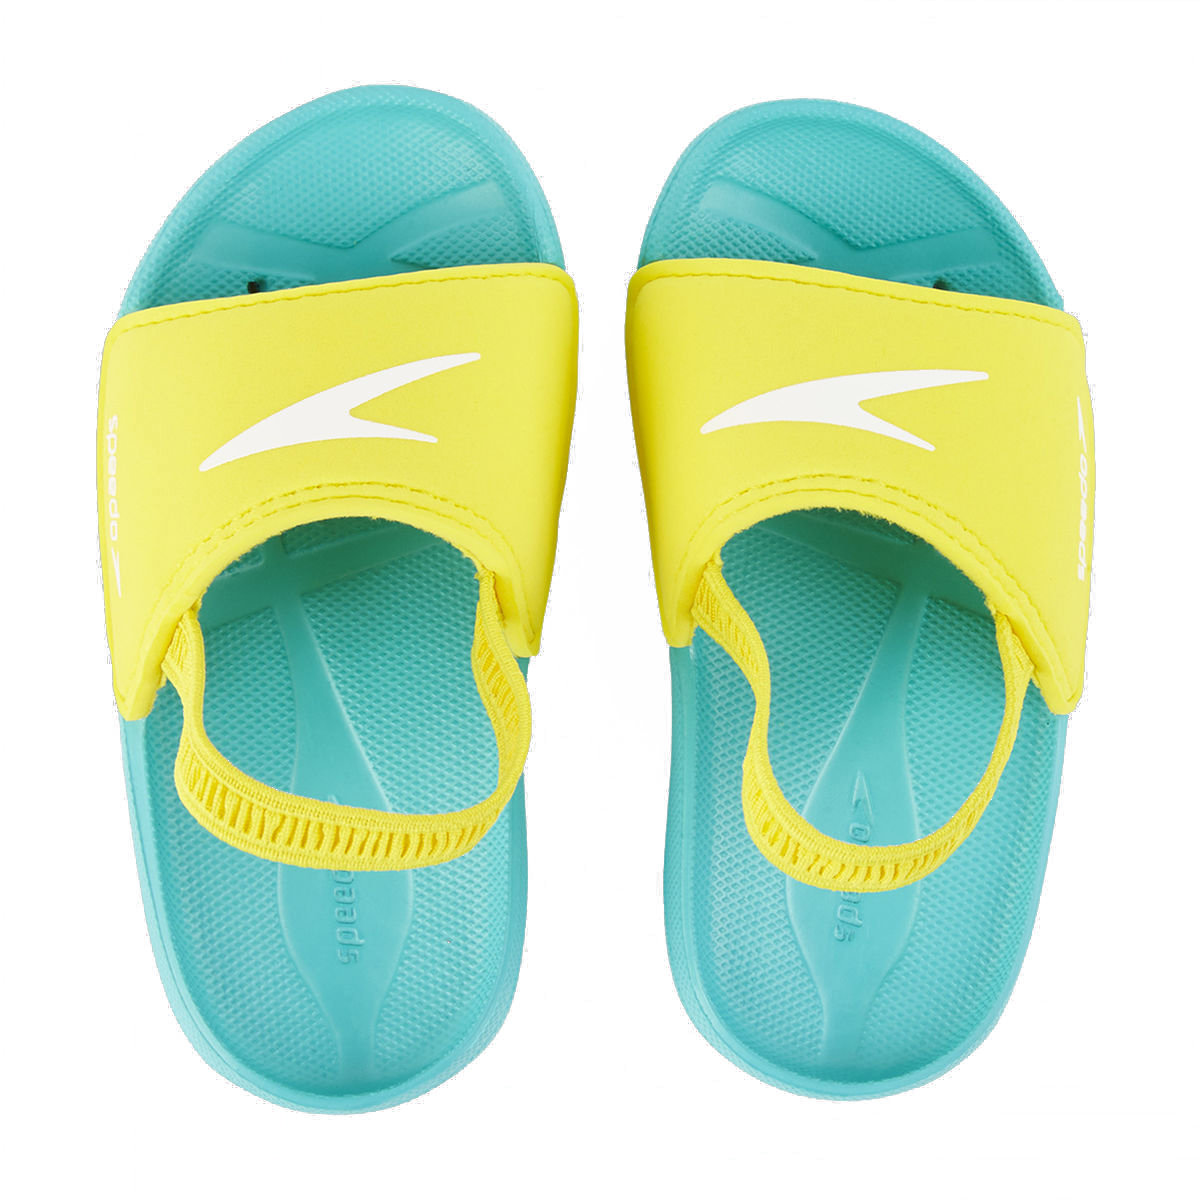 Atami Sea Squad Infant Slides-Blue / Yellow